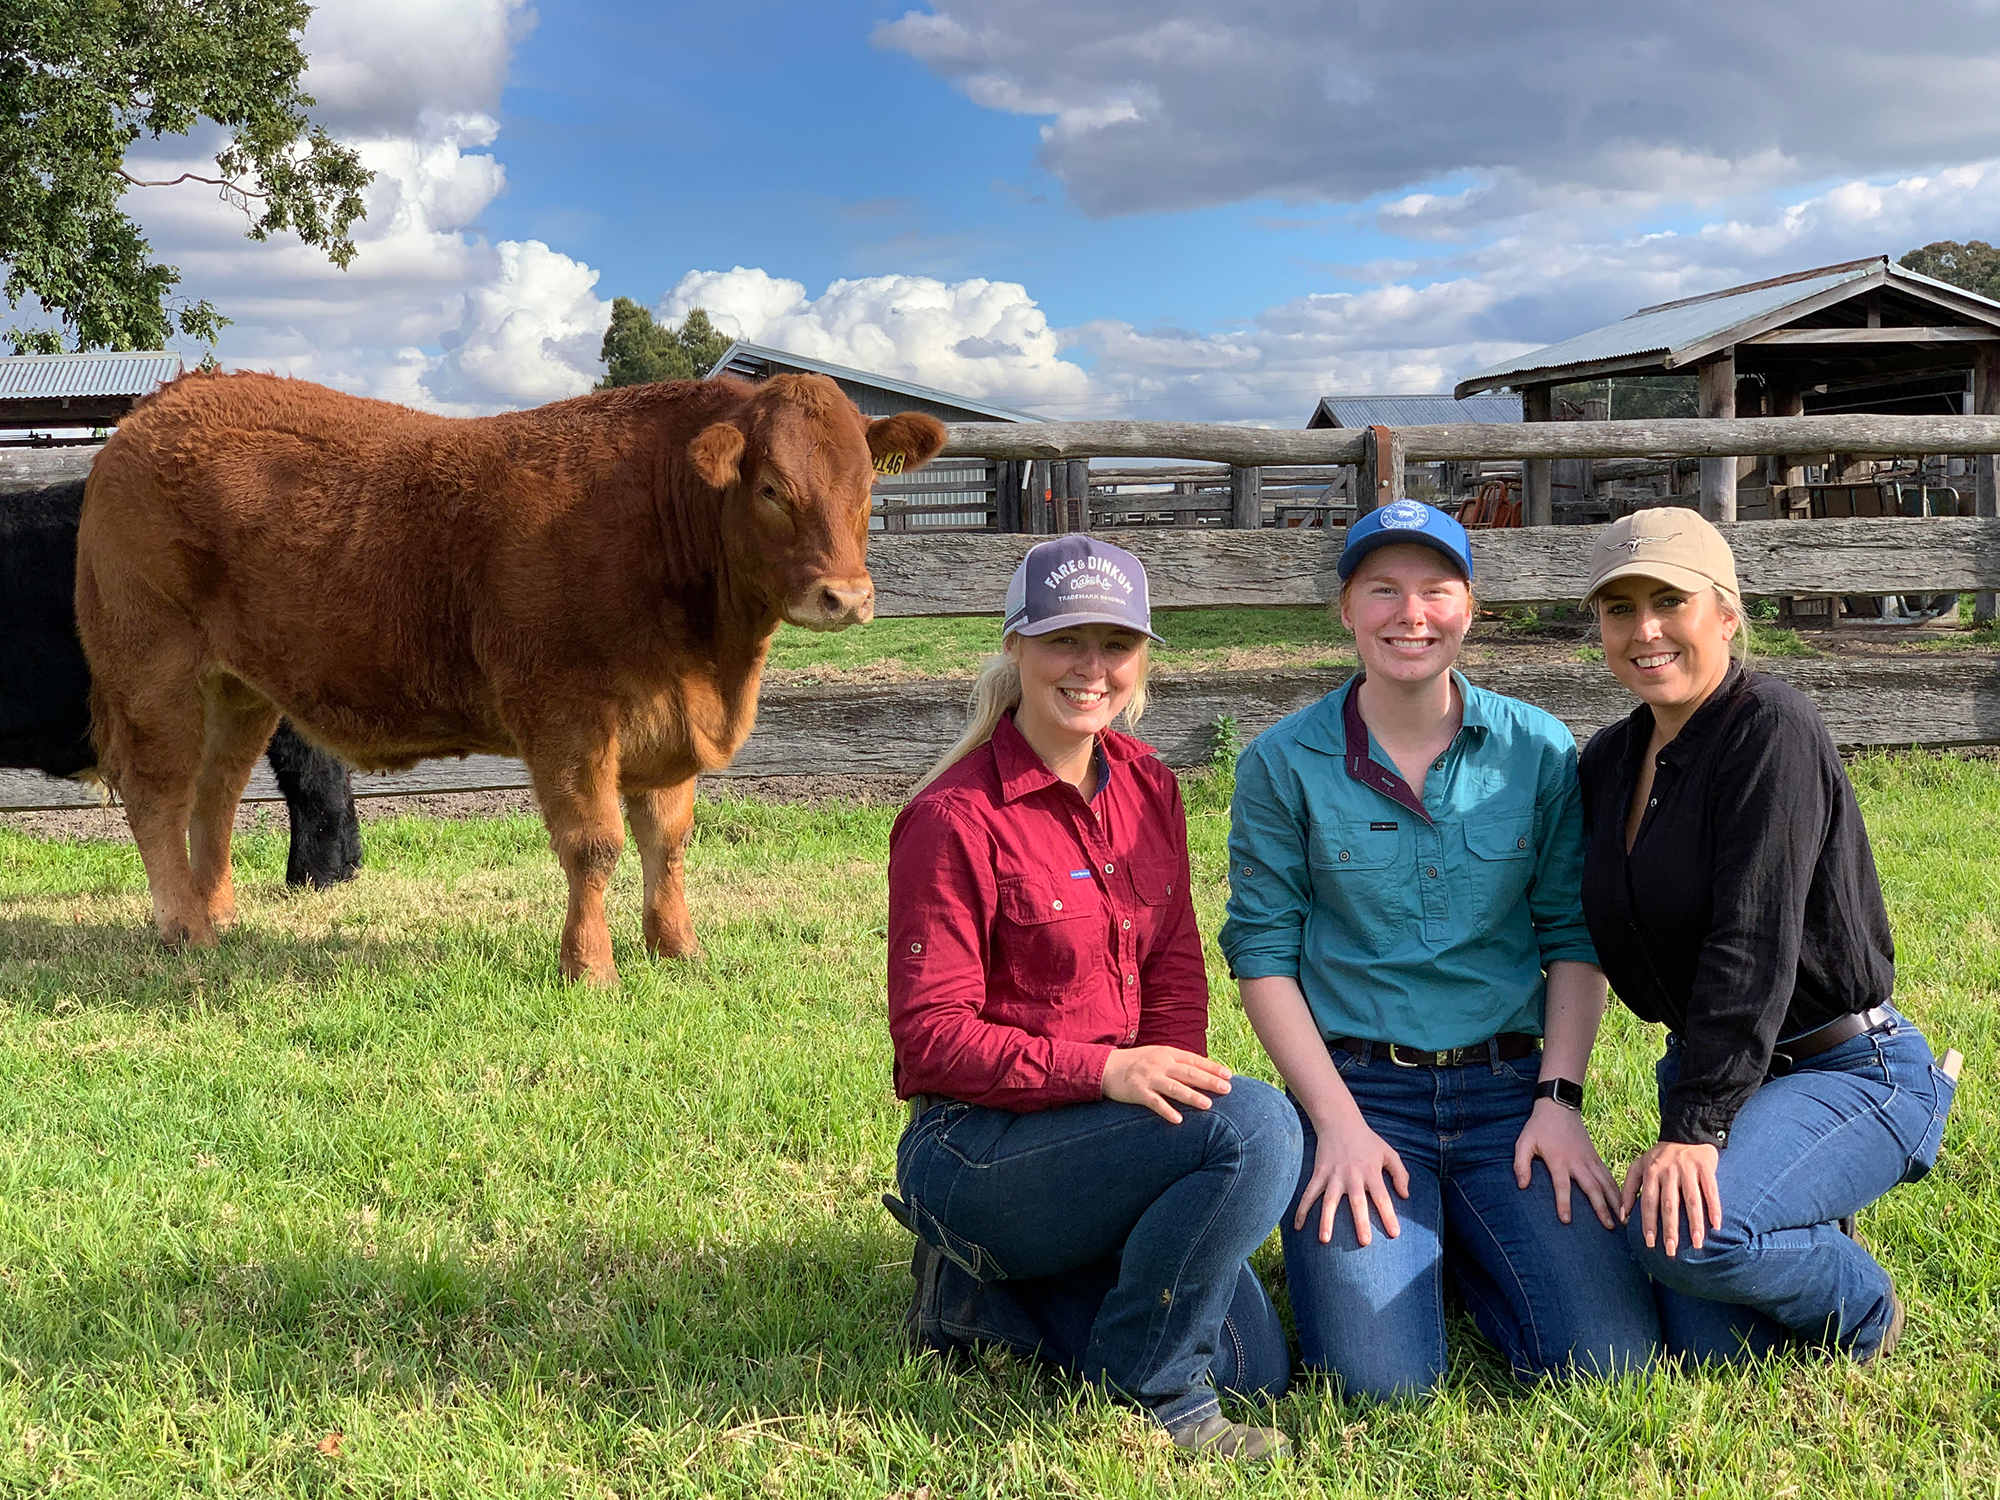 Farm Management students with a Limousin steer at Western Sydney University Hawkesbury Campus.